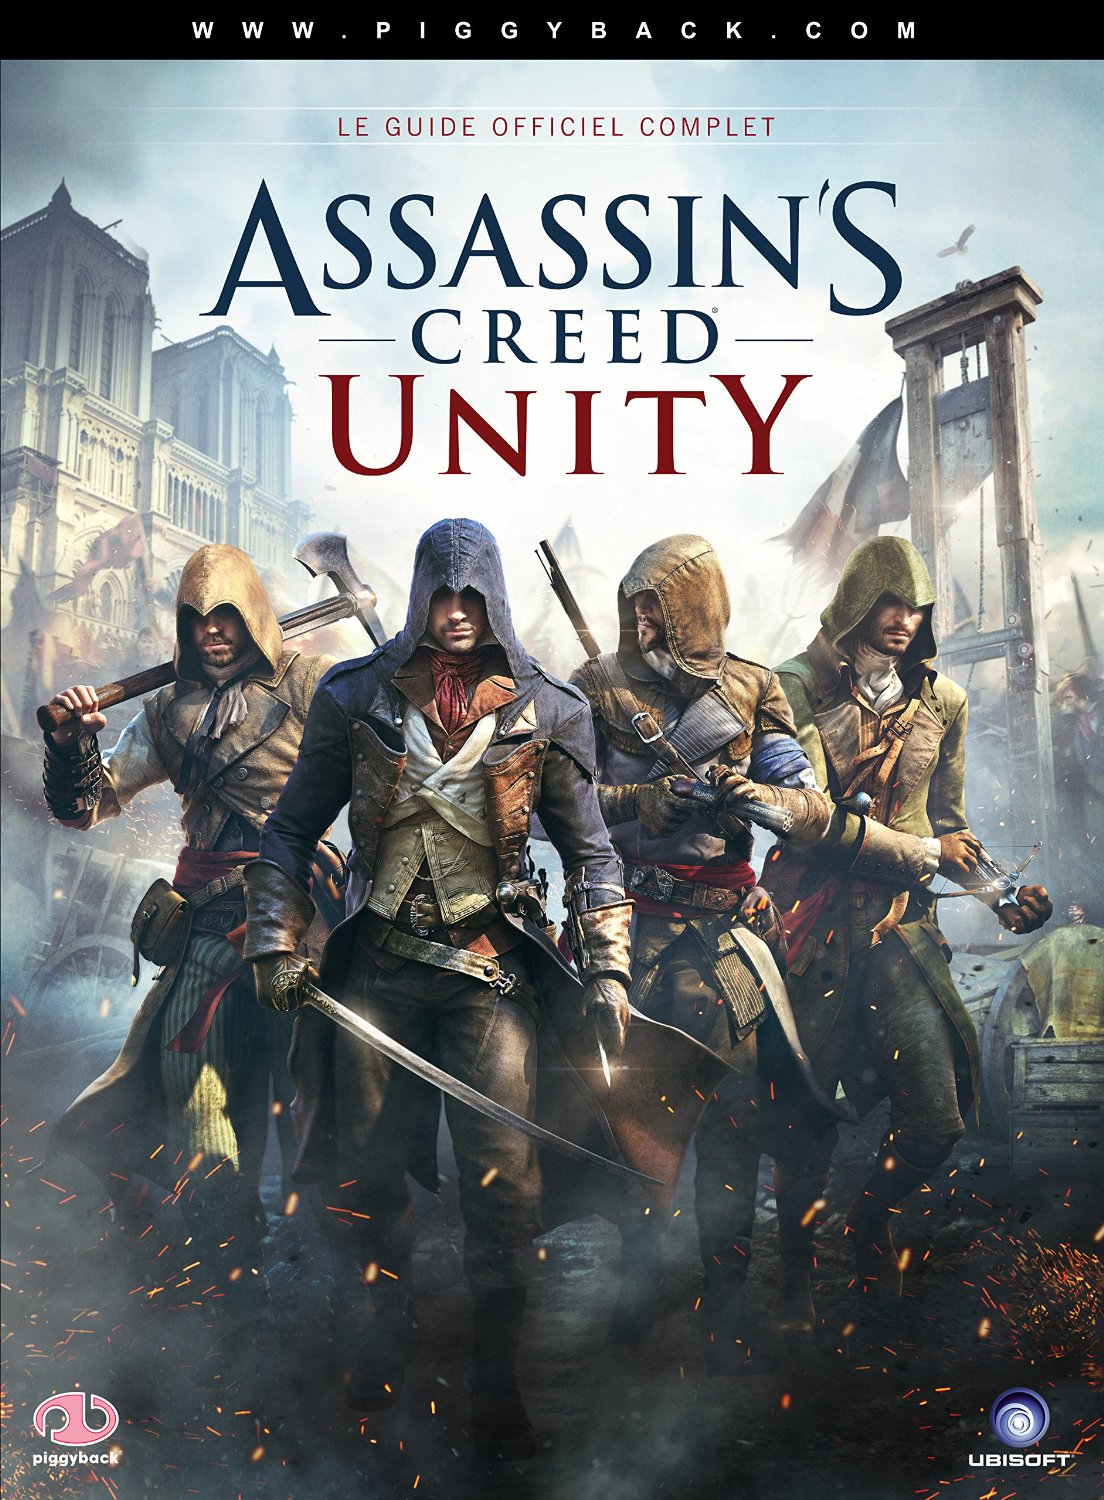 GUIDE ASSASSINS CREED UNITY